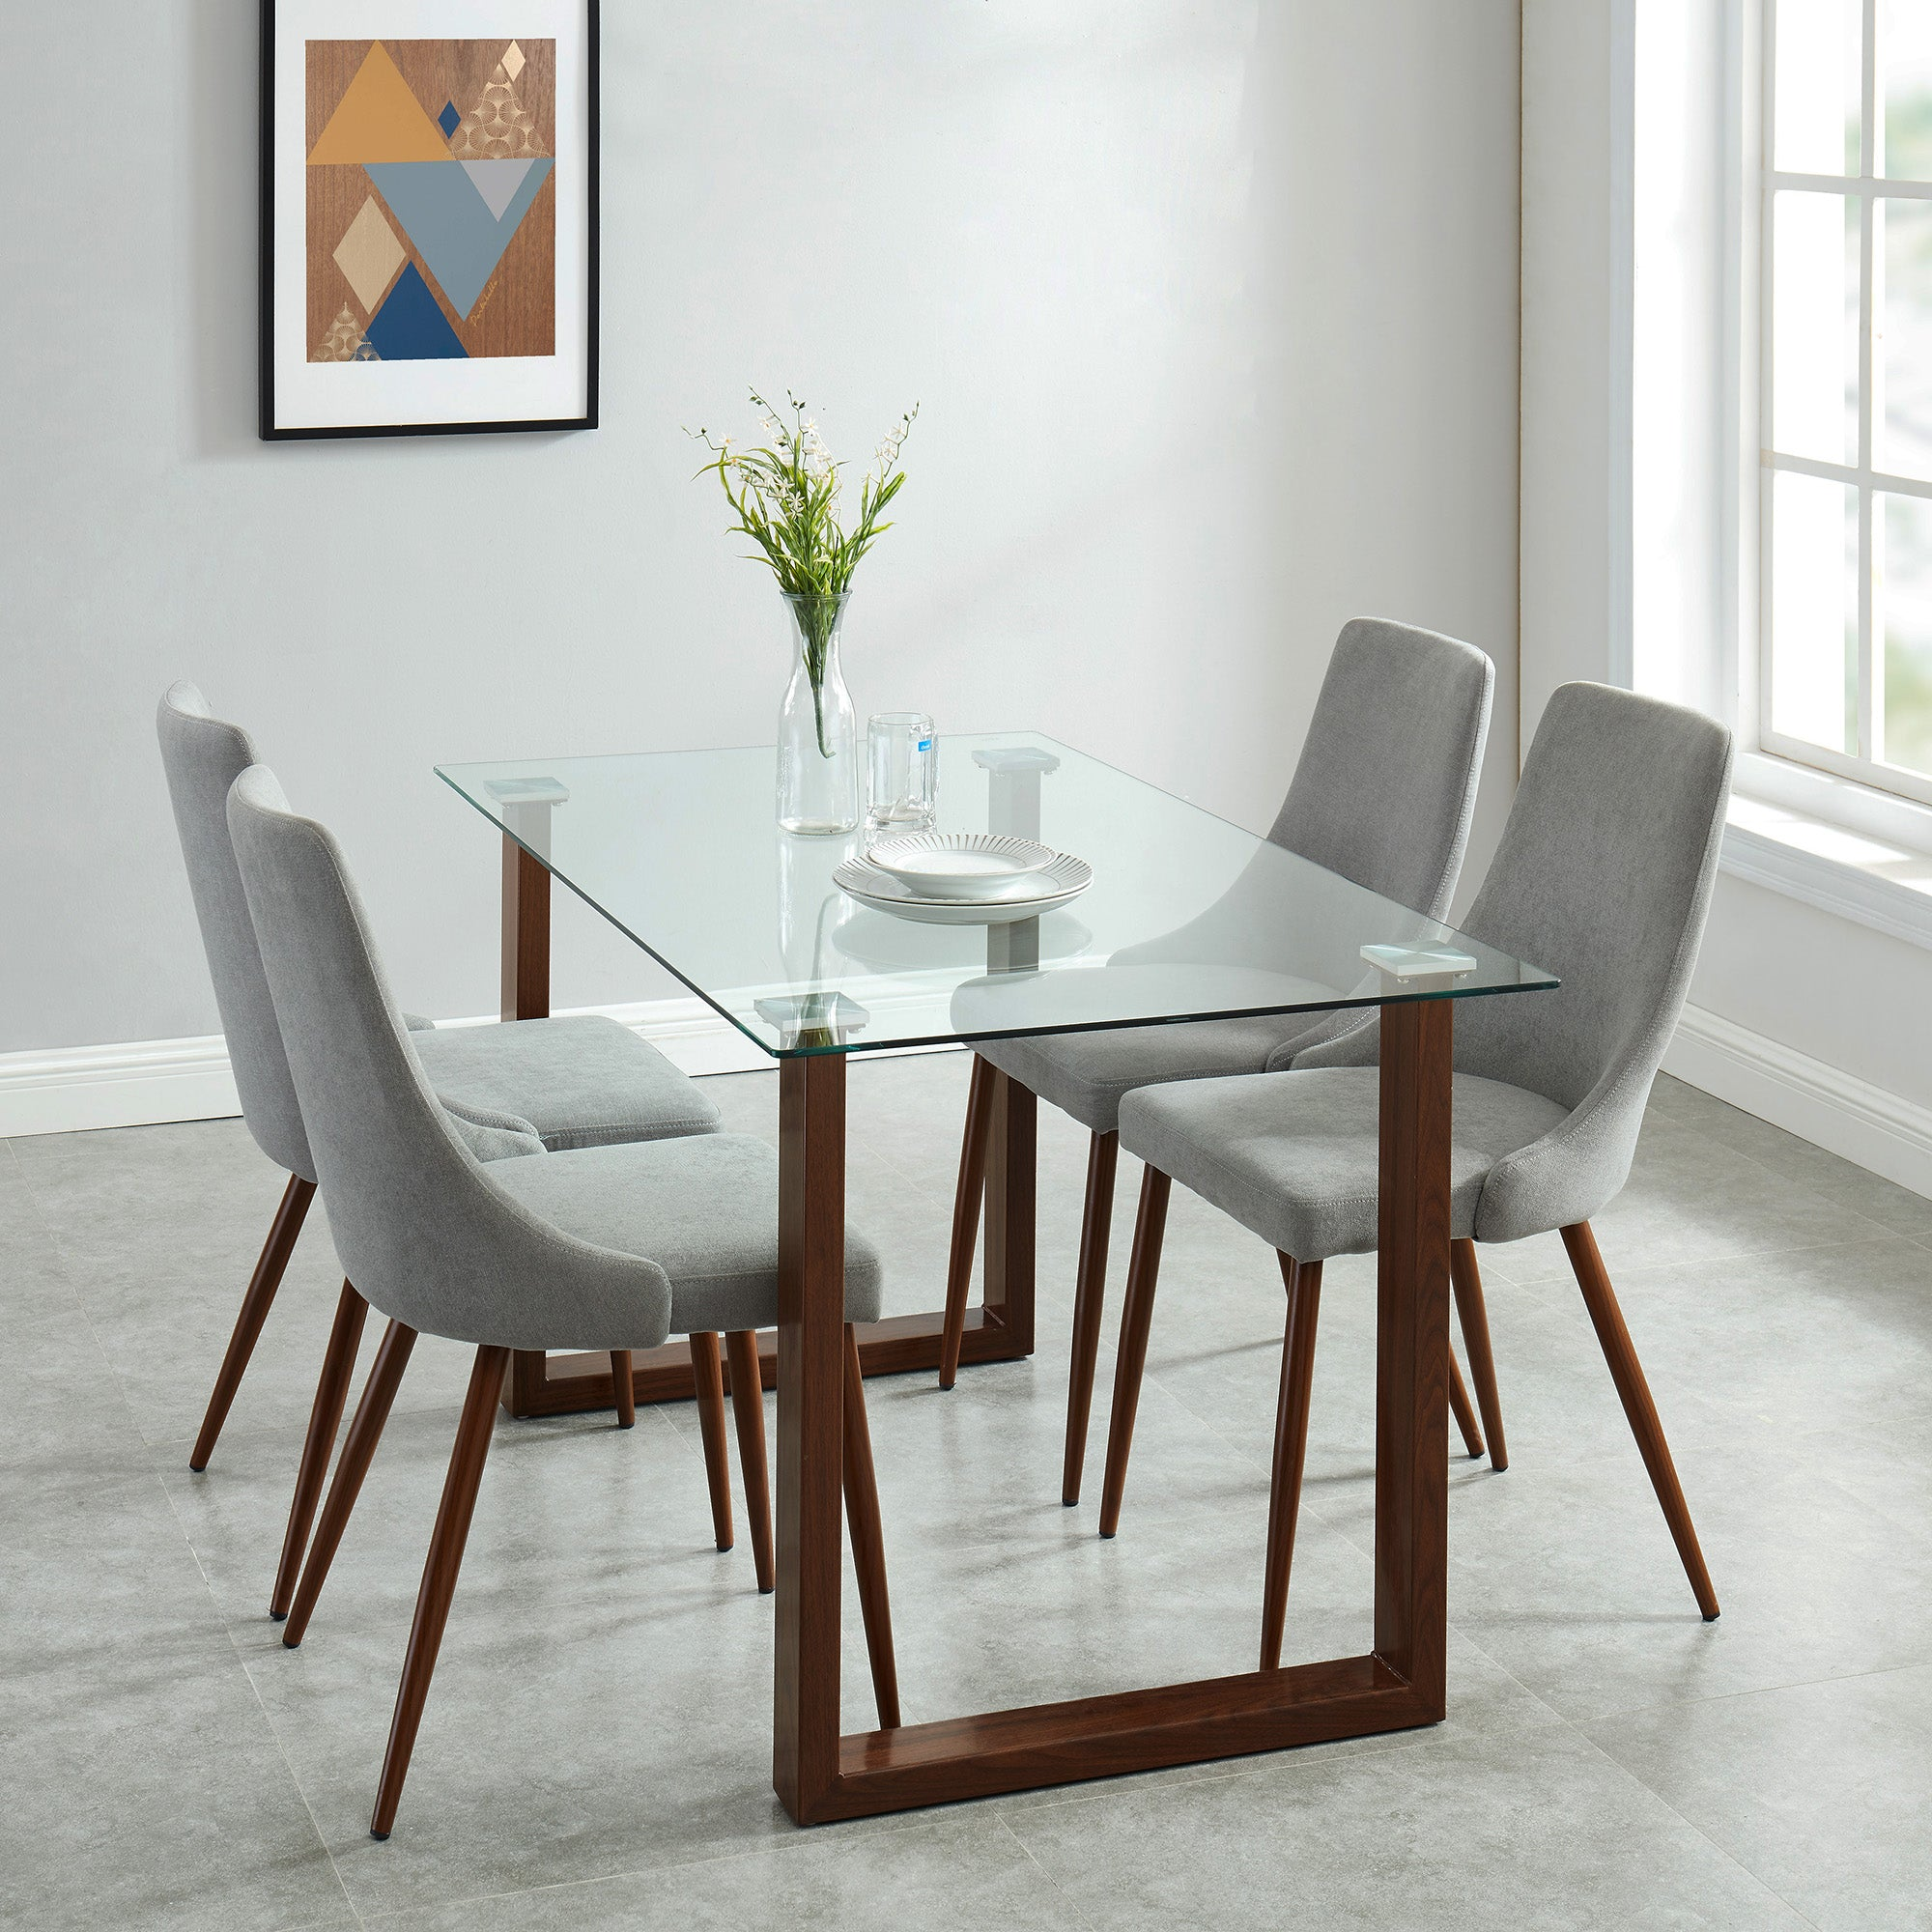 Andy/Cora 5pc Dining Set, Walnut/Grey